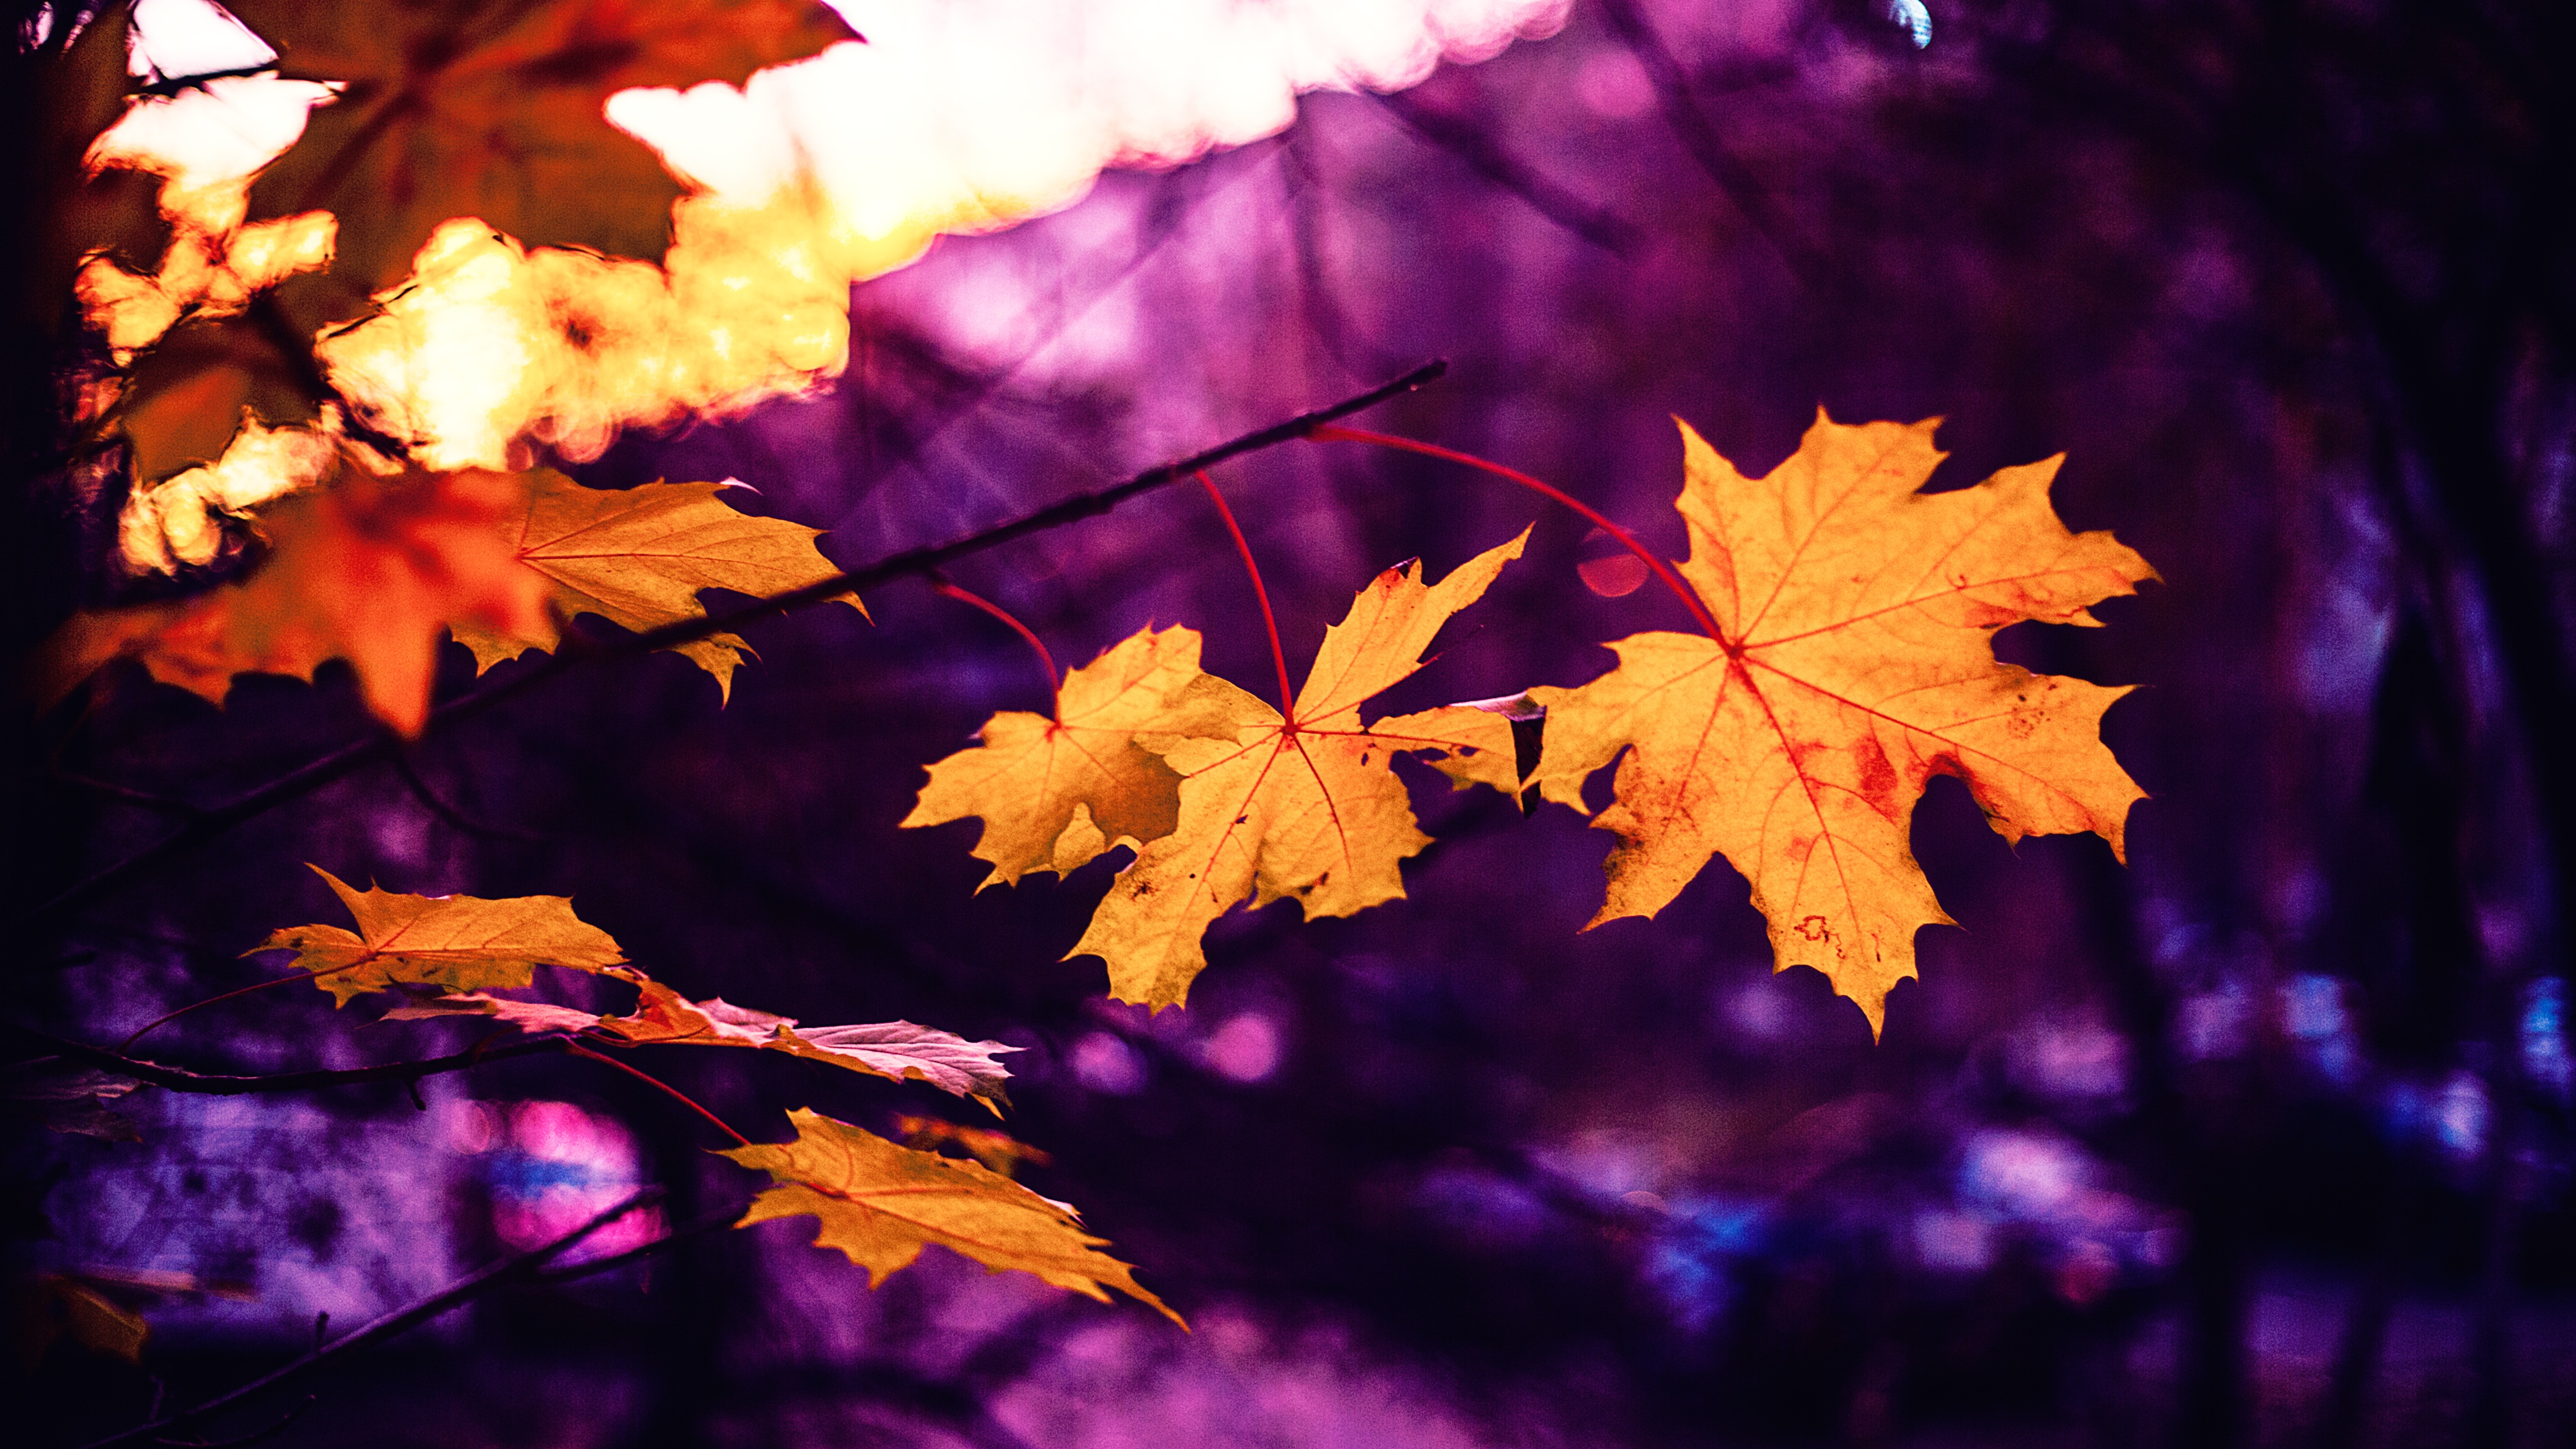 155008 download wallpaper Nature, Maple, Leaves, Autumn, Blur, Smooth screensavers and pictures for free